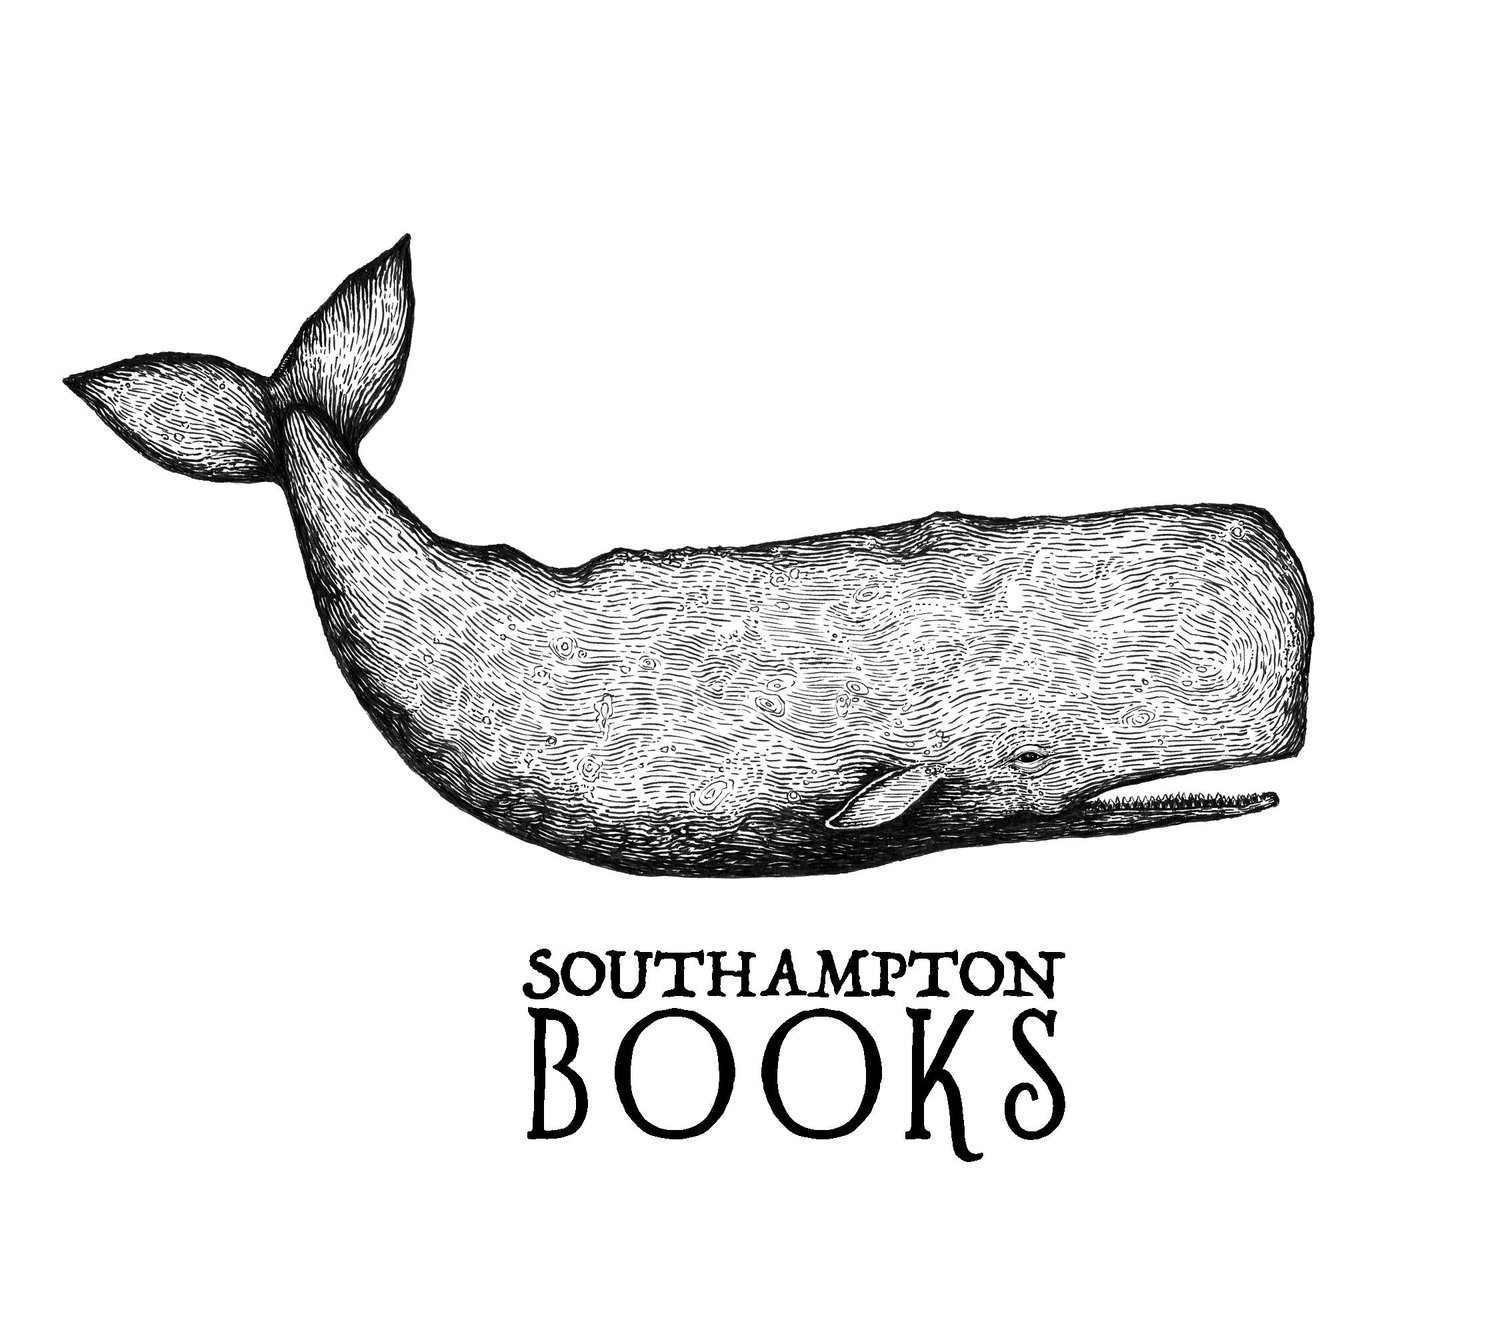 Southampton Books - Sag Harbor Books